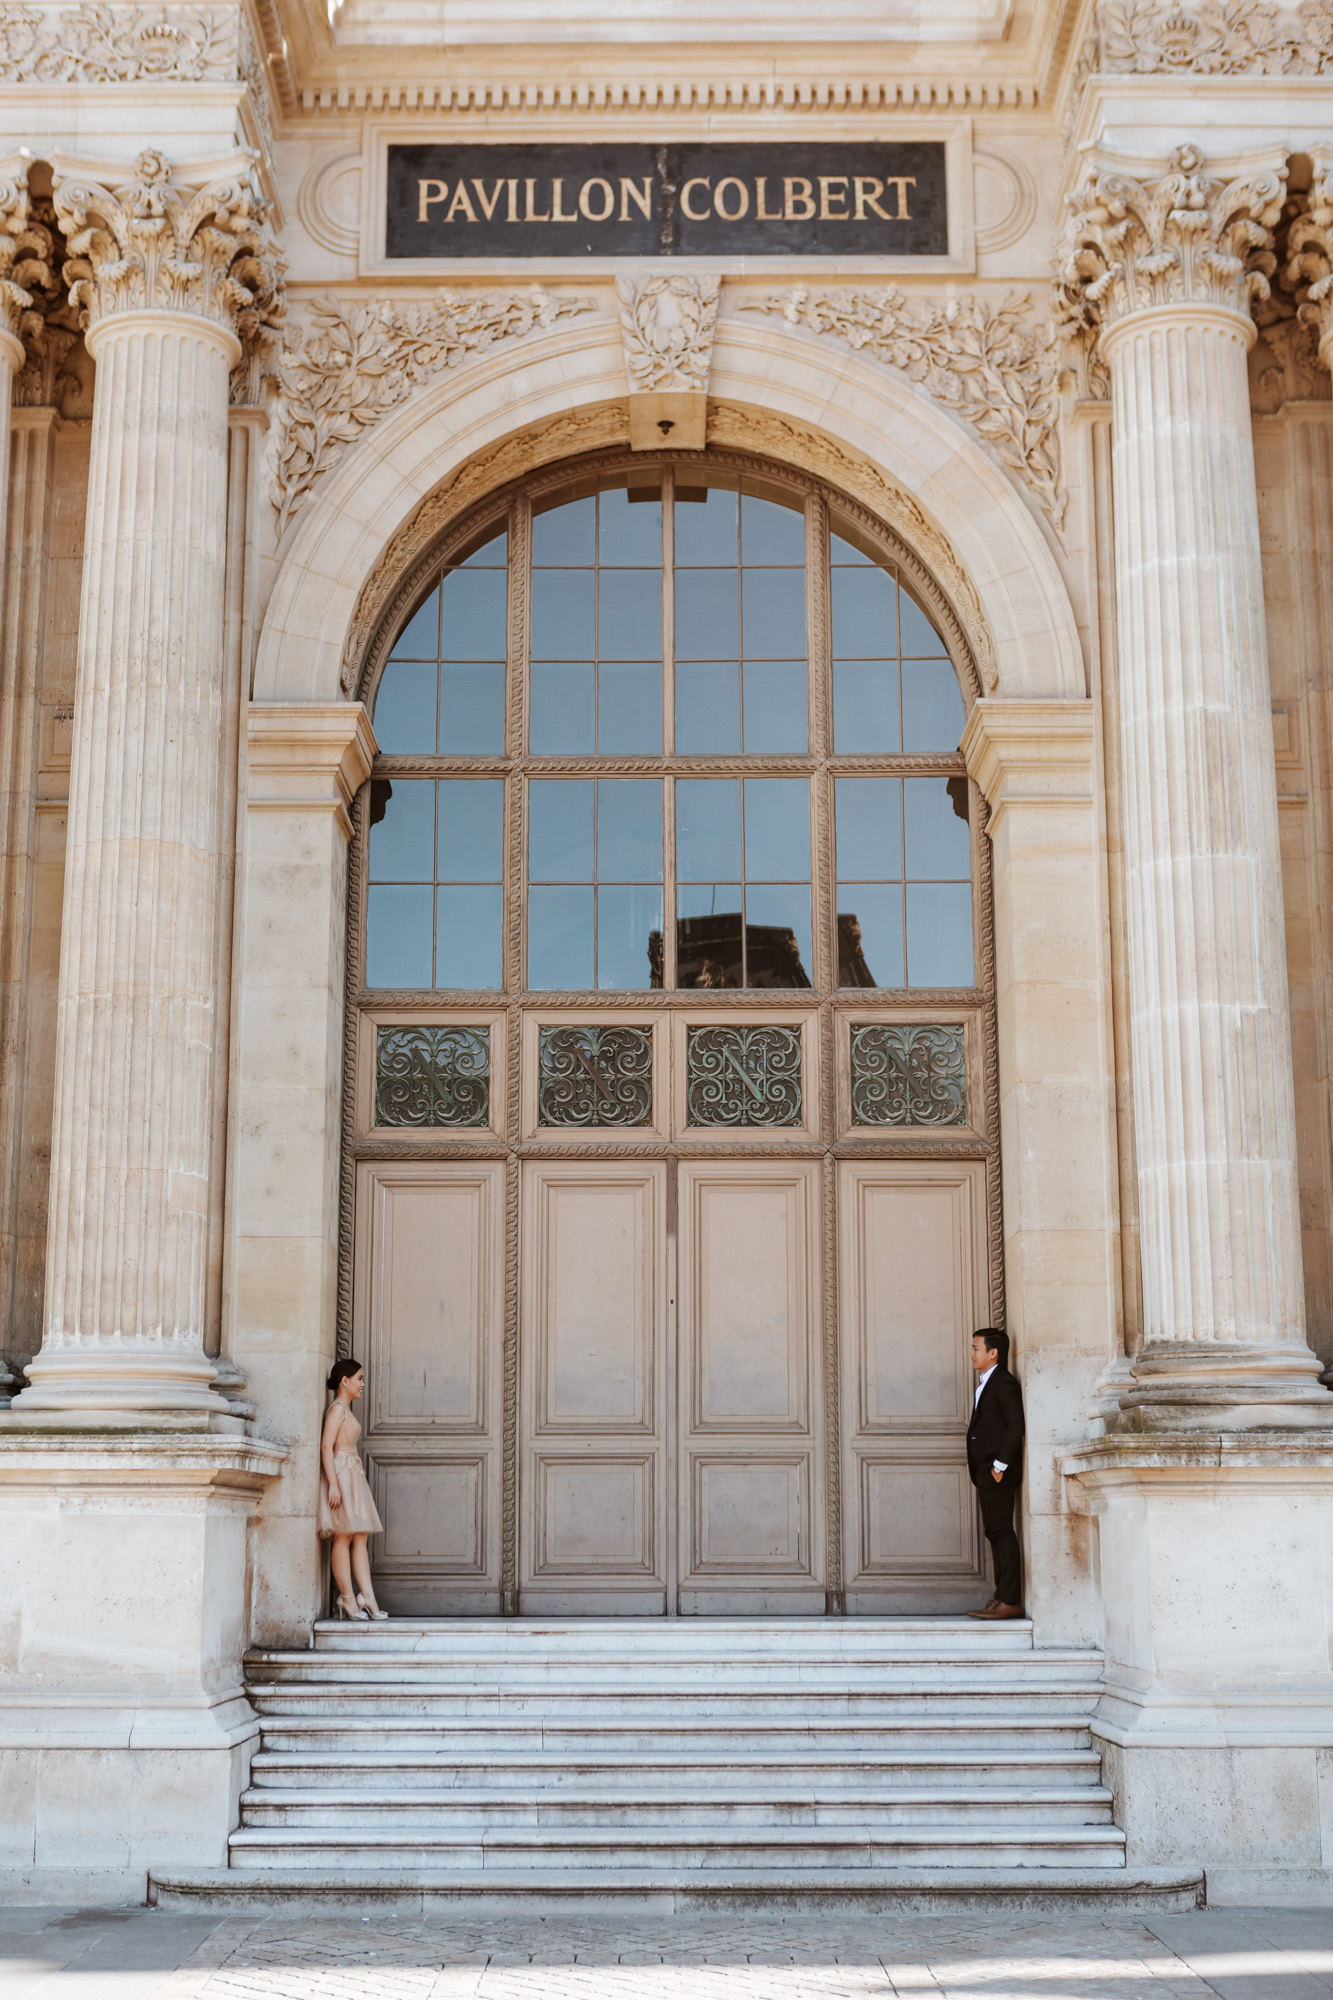 Pre-wedding couple portrait standing by Pavillon Colbert at the Louvre Museum captured by Paris Photographer Federico Guendel